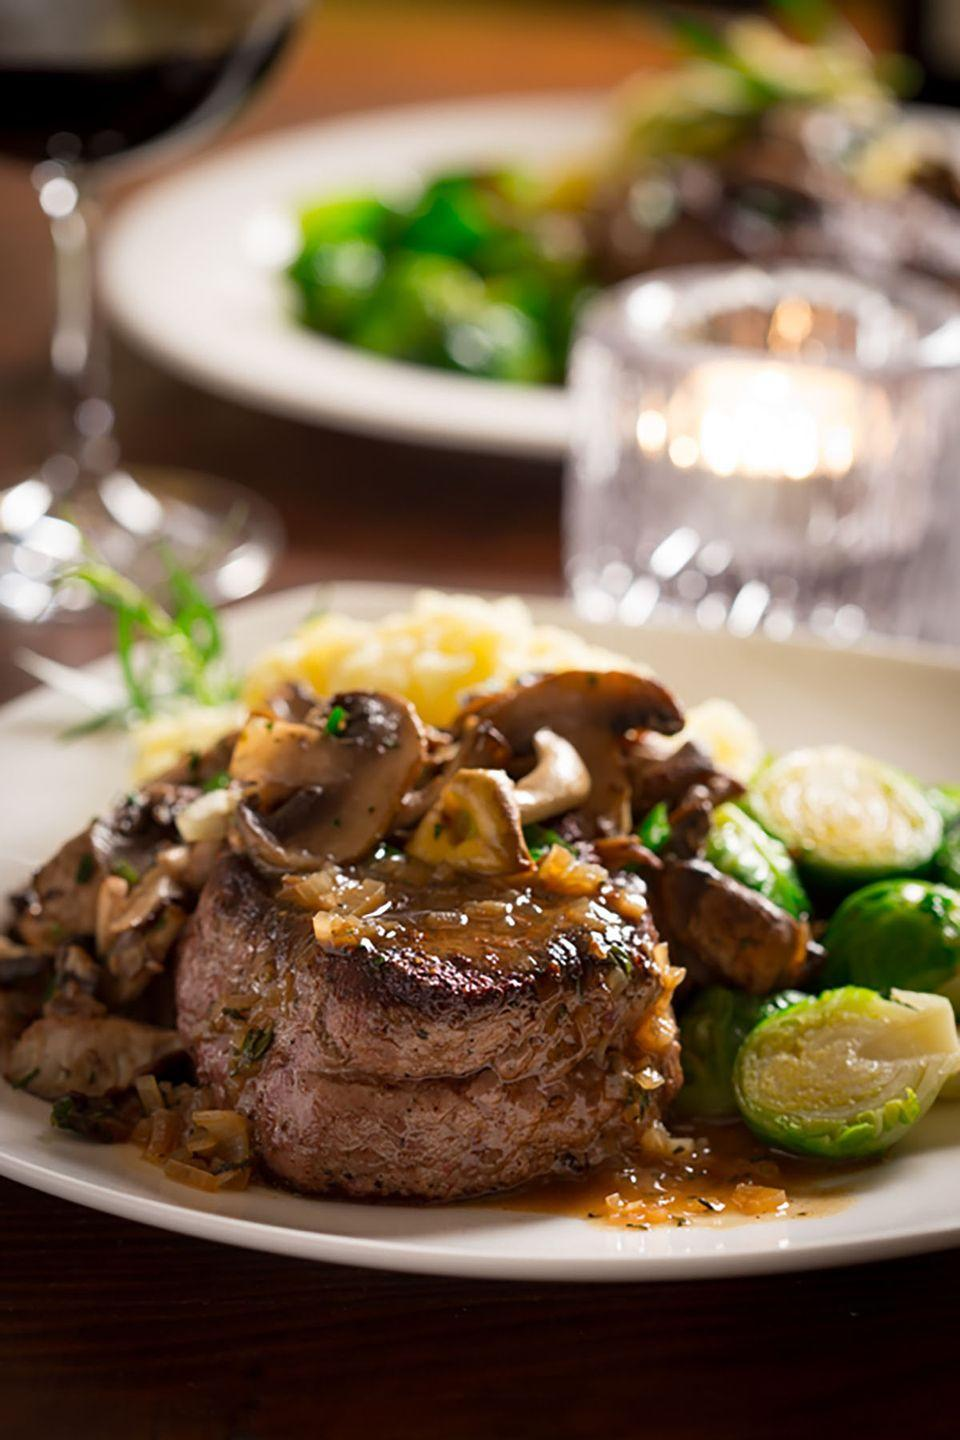 """<p><span class=""""redactor-invisible-space"""">Sautéed mushrooms and a savory sauce make this seared crust of filet mignon taste oh-so-good.</span></p><p><strong>Get the recipe at <a href=""""http://www.healthyseasonalrecipes.com/big-sexy-steaks-tarragon-mushrooms/"""" rel=""""nofollow noopener"""" target=""""_blank"""" data-ylk=""""slk:Healthy Seasonal Recipes"""" class=""""link rapid-noclick-resp"""">Healthy Seasonal Recipes</a>. </strong> </p>"""